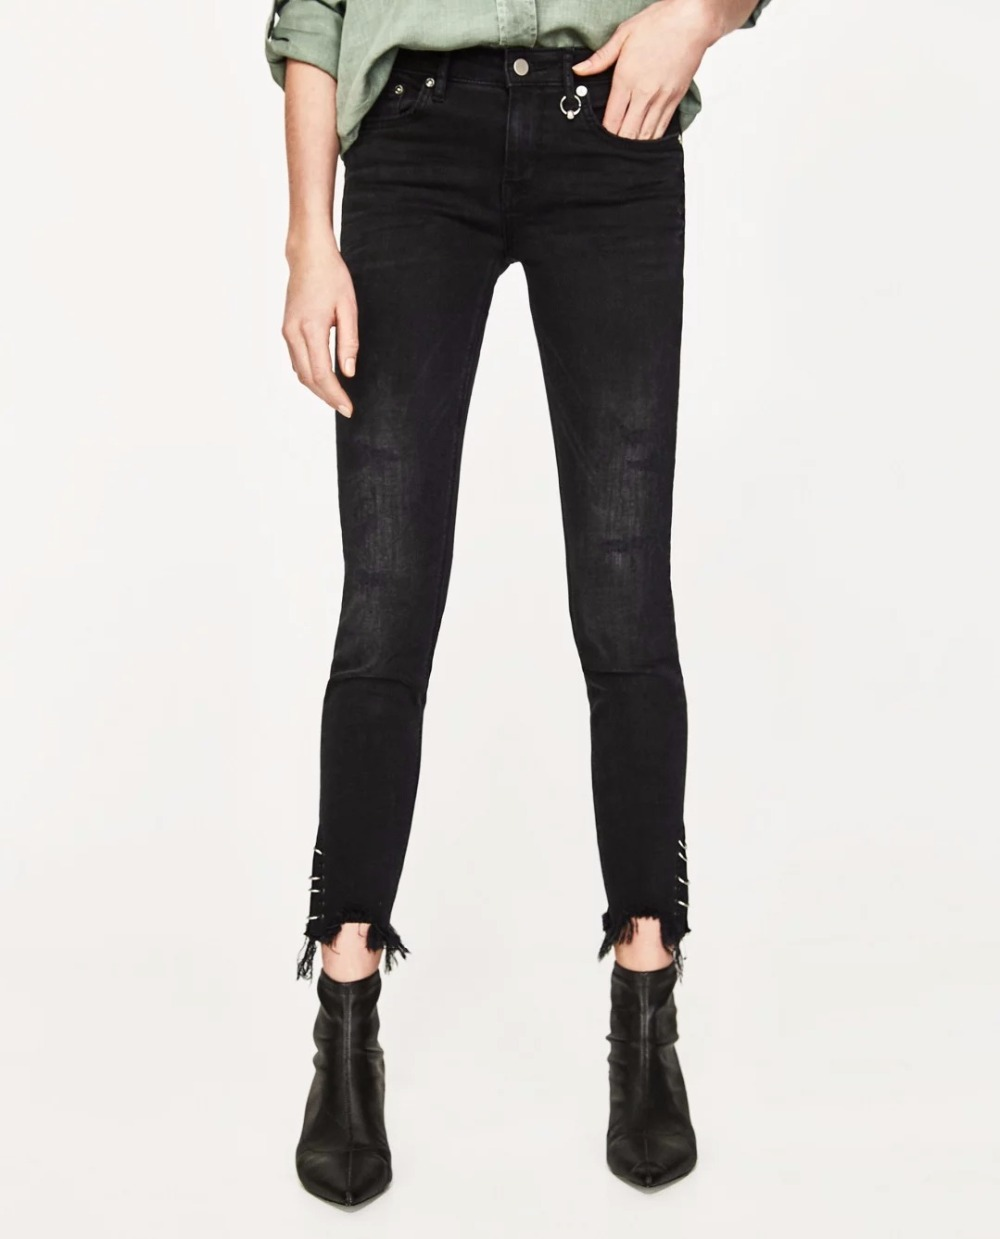 WISHBOP WOMAN BLACK DENIM Skinny MID-RISE FRAYED JEANS Metal ring detail on waist Frayed hem metallic Piercing Cropped Trousers ring denim jeans